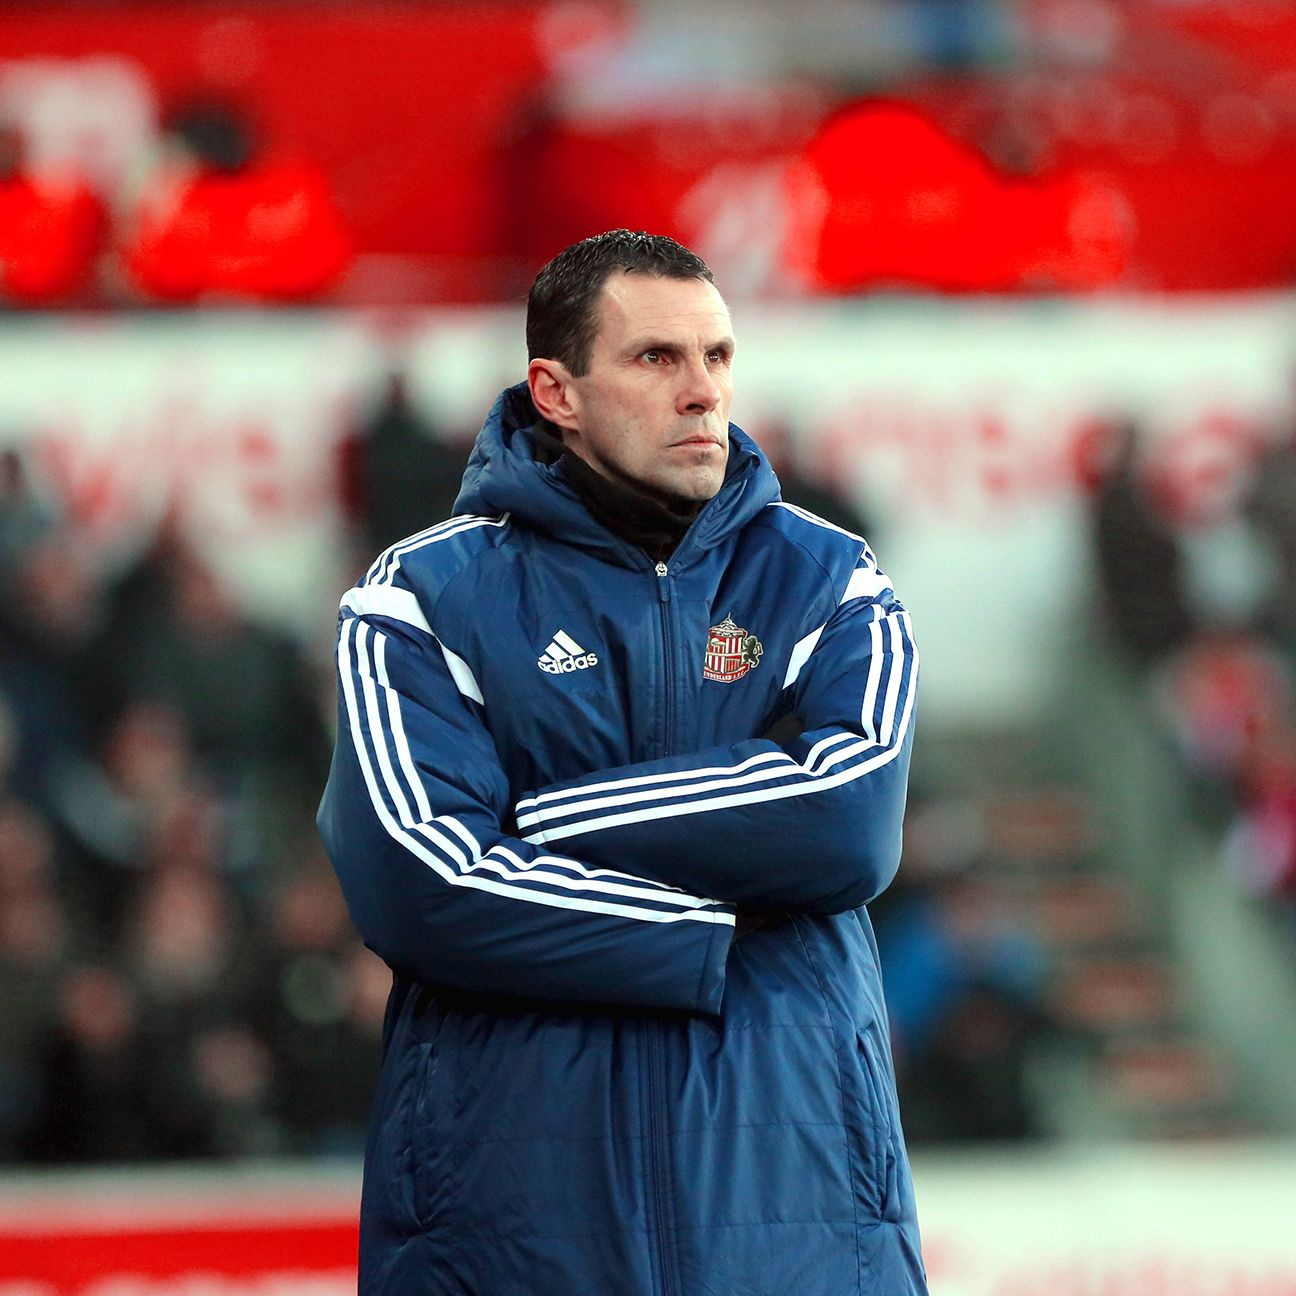 Sunderland manager Gus Poyet is under heavy scrutiny following his team's dismal home loss to QPR.